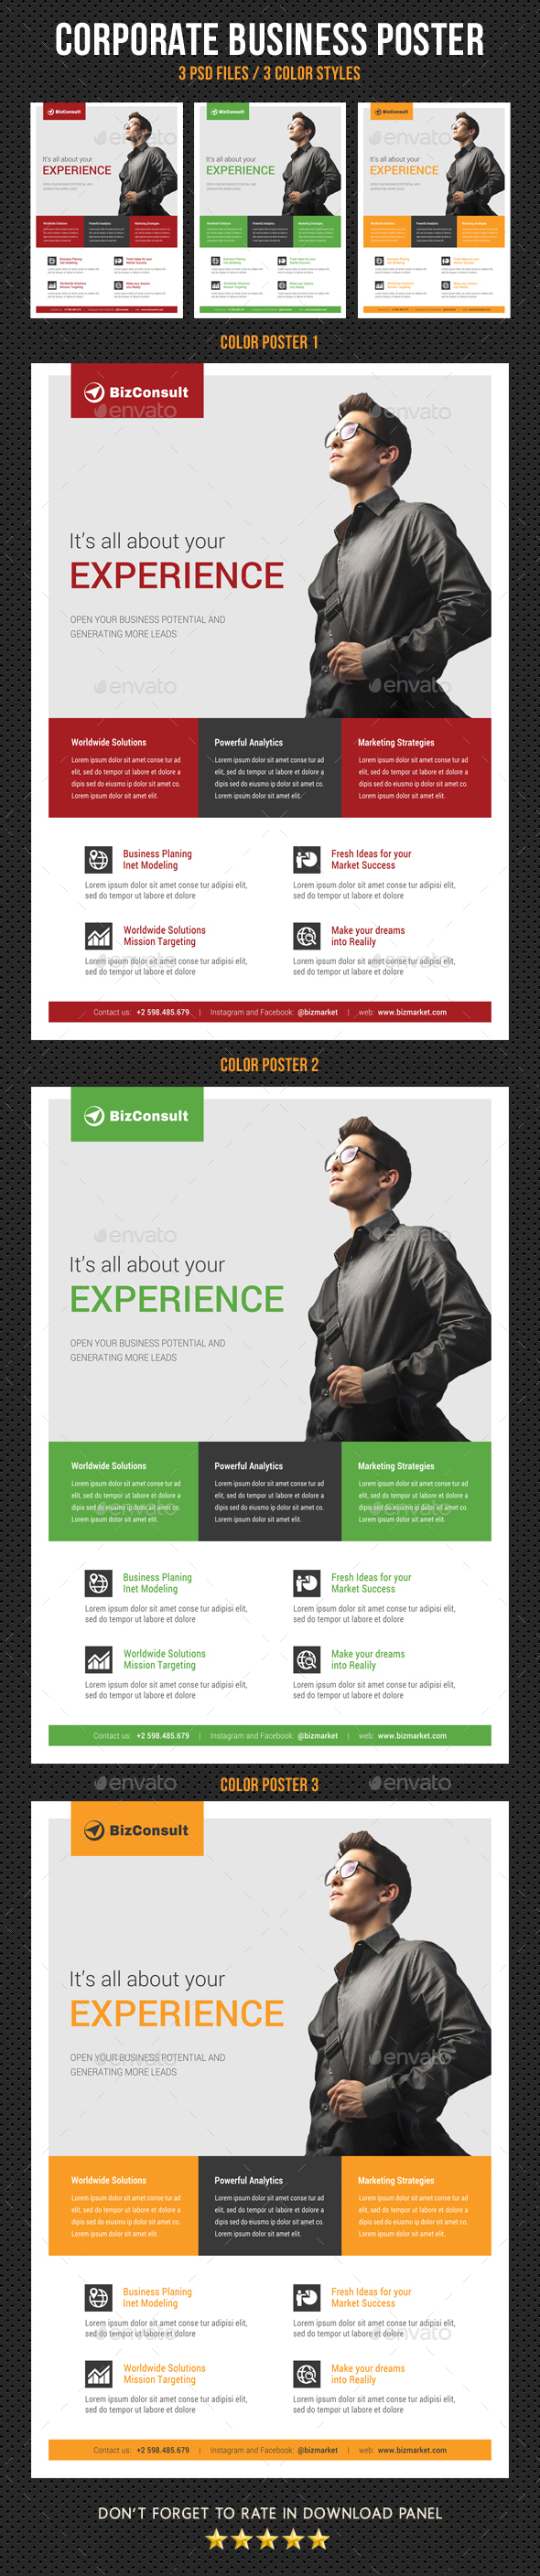 Corporate Business Poster Template V23 - Signage Print Templates